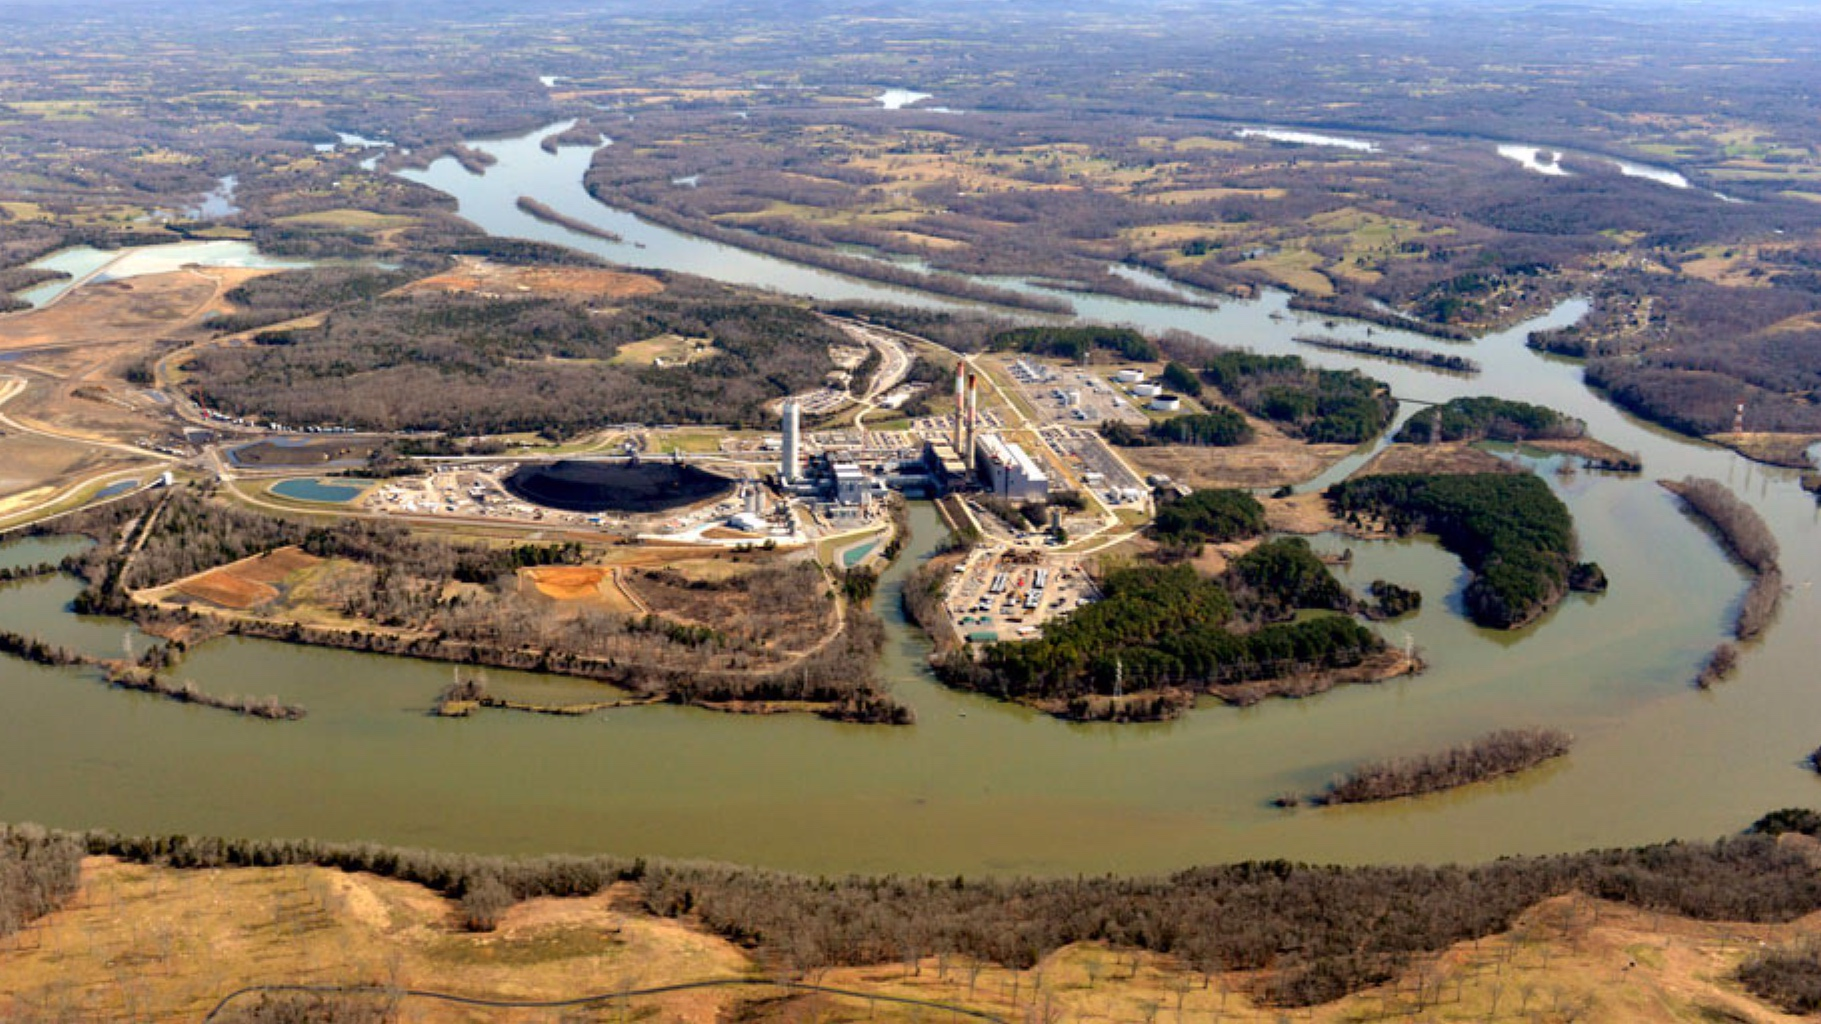 MORRISTOWN NATIVE WINS COAL ASH BATTLE AGAINST tva - Citizen Tribune